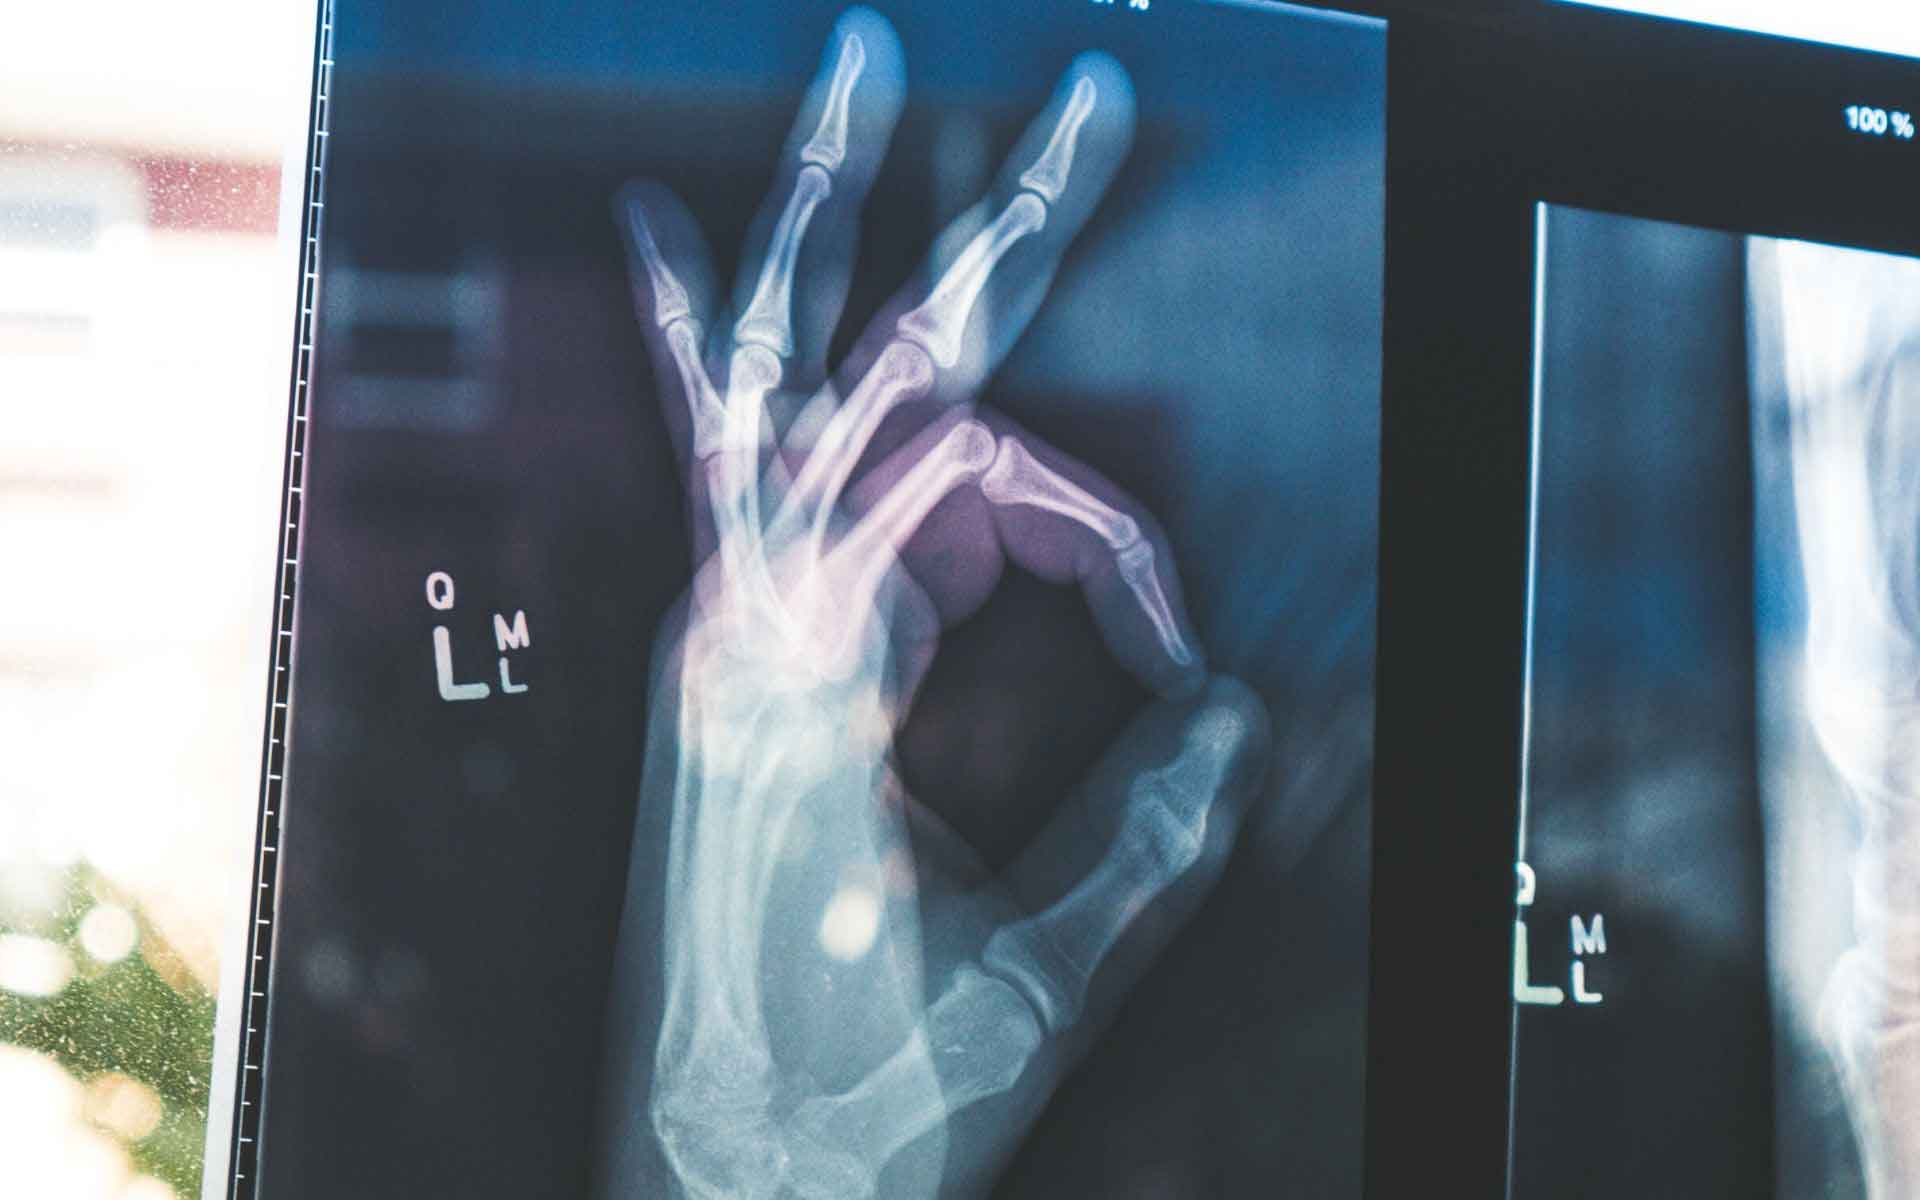 xray of a hand making the OK sign